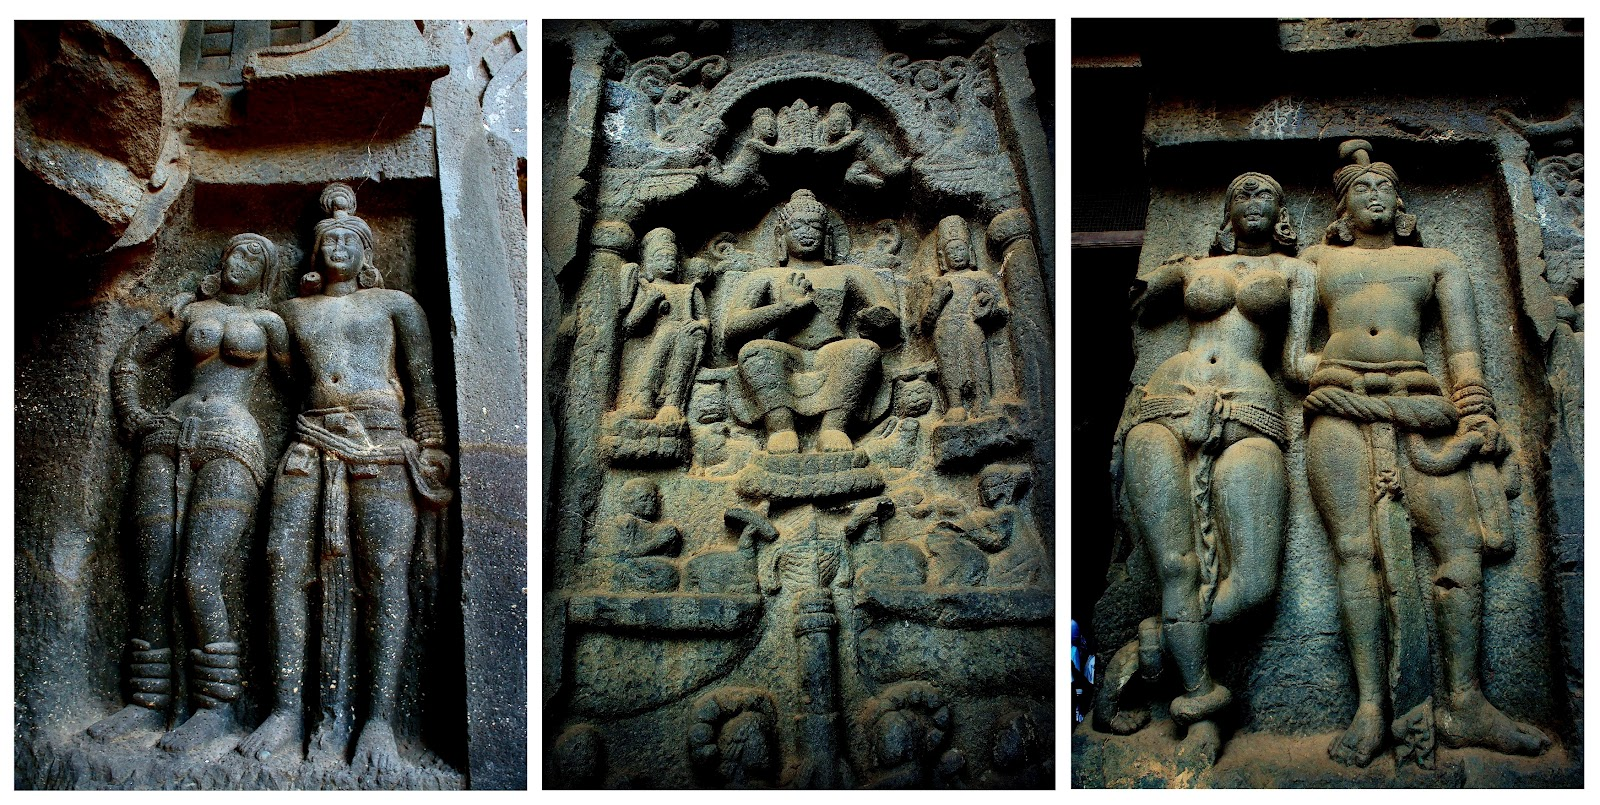 An ode to history a photo montage vijaydurg fort - If Someone Needs To Find Out The Only Reason To Visit Karla It Is Nothing But The Fantastic Art Work Inside The Caves There Are Carvings On The Rock